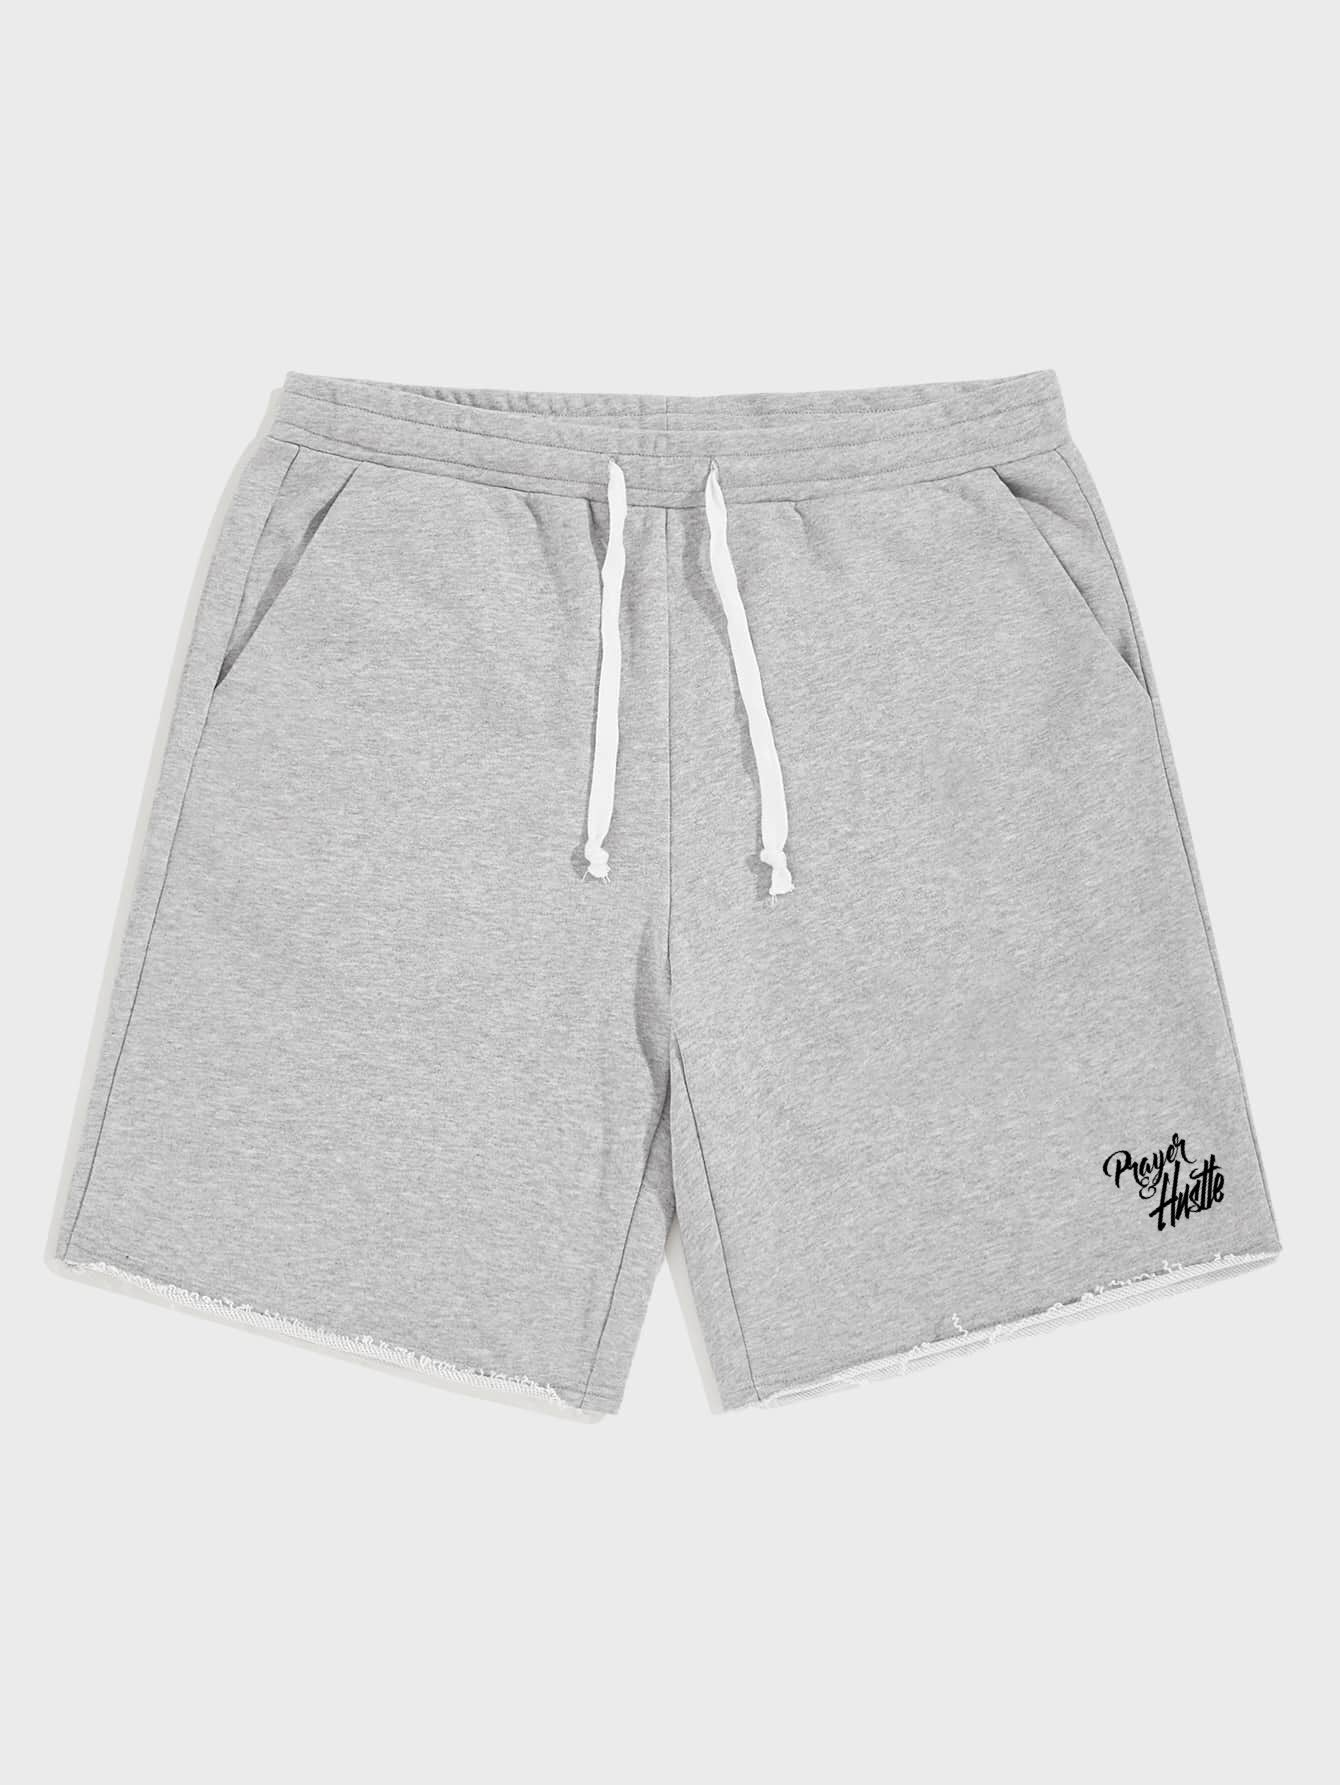 Unisex Athleisure Shorts